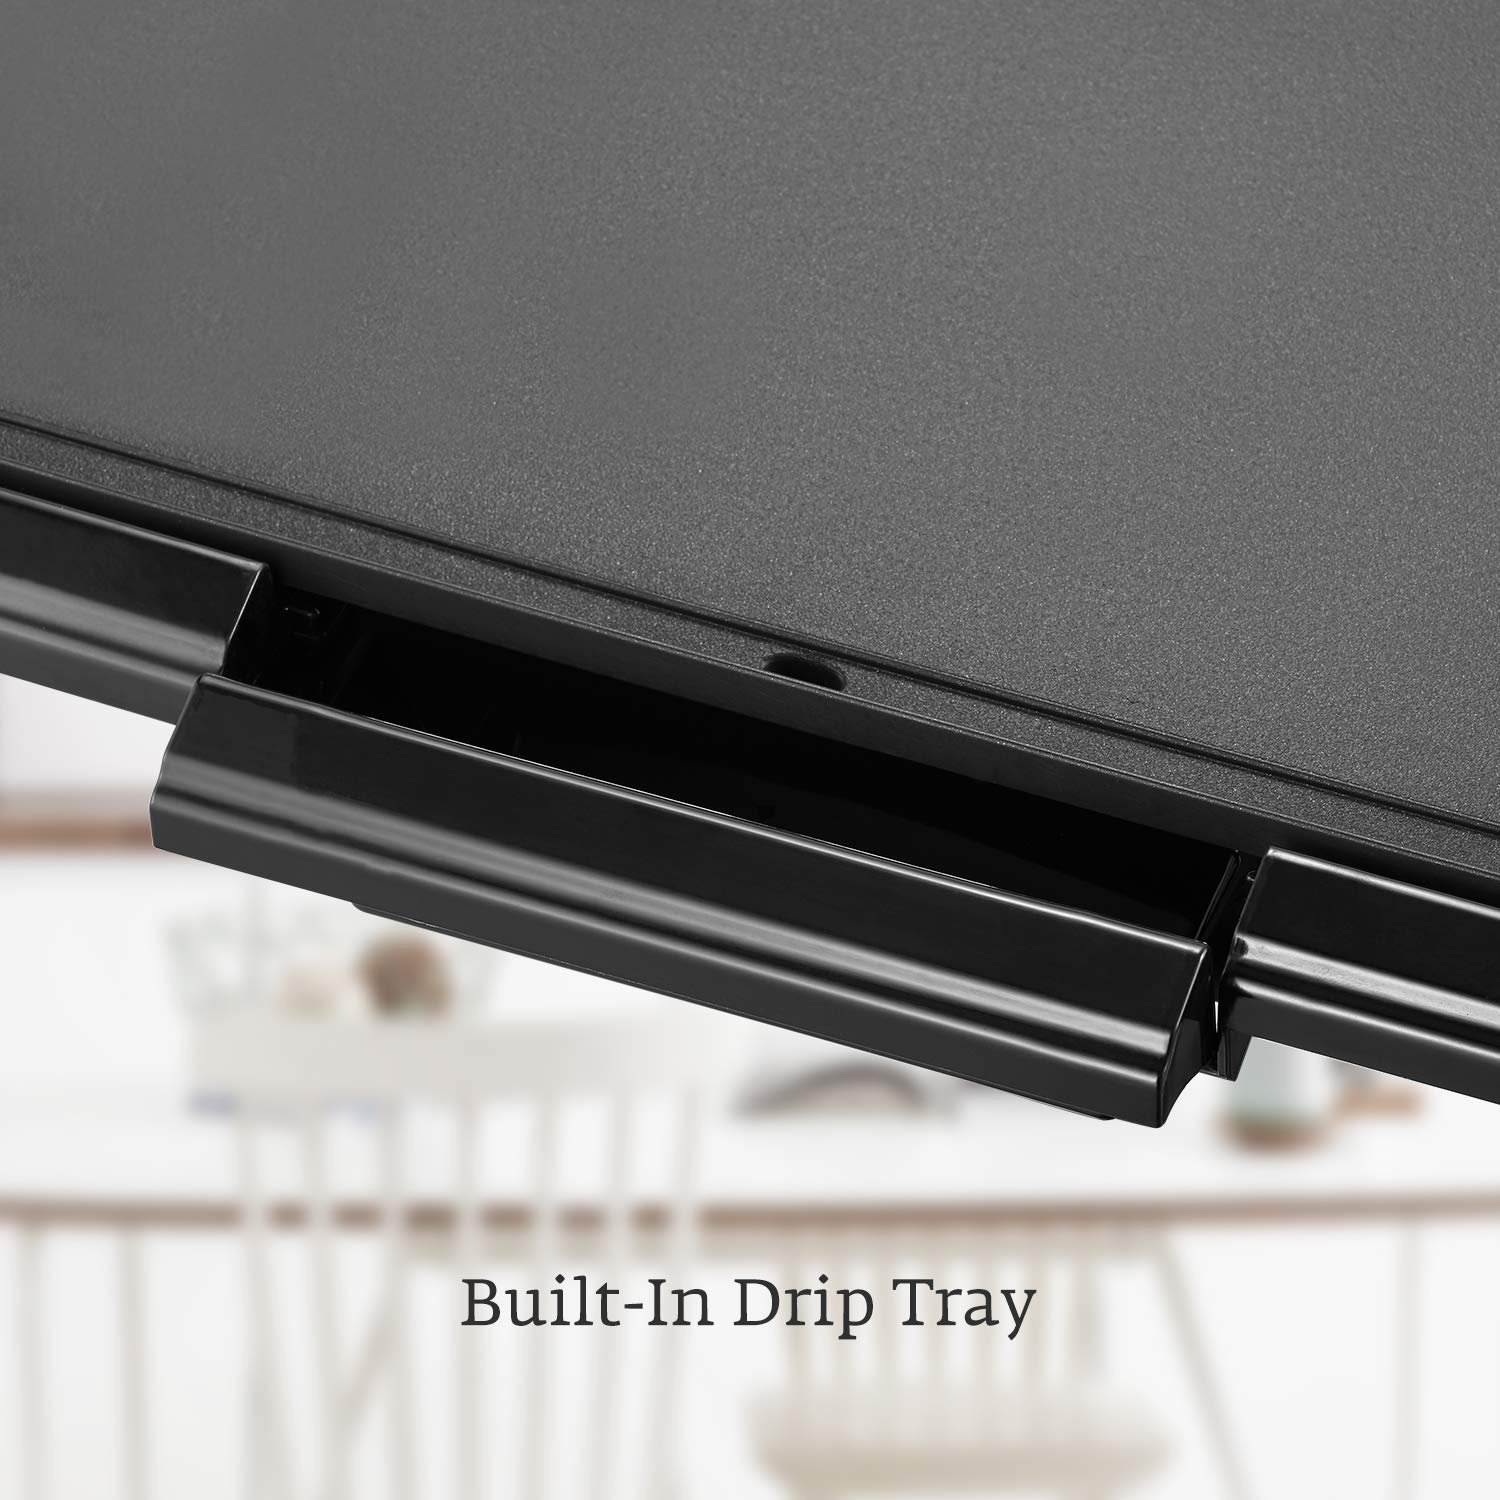 Kealive Griddle, Family-Sized Electric Grill Griddle 1500W with Drip Tray, Non-stick, 10''x20'', Black by Kealive (Image #5)